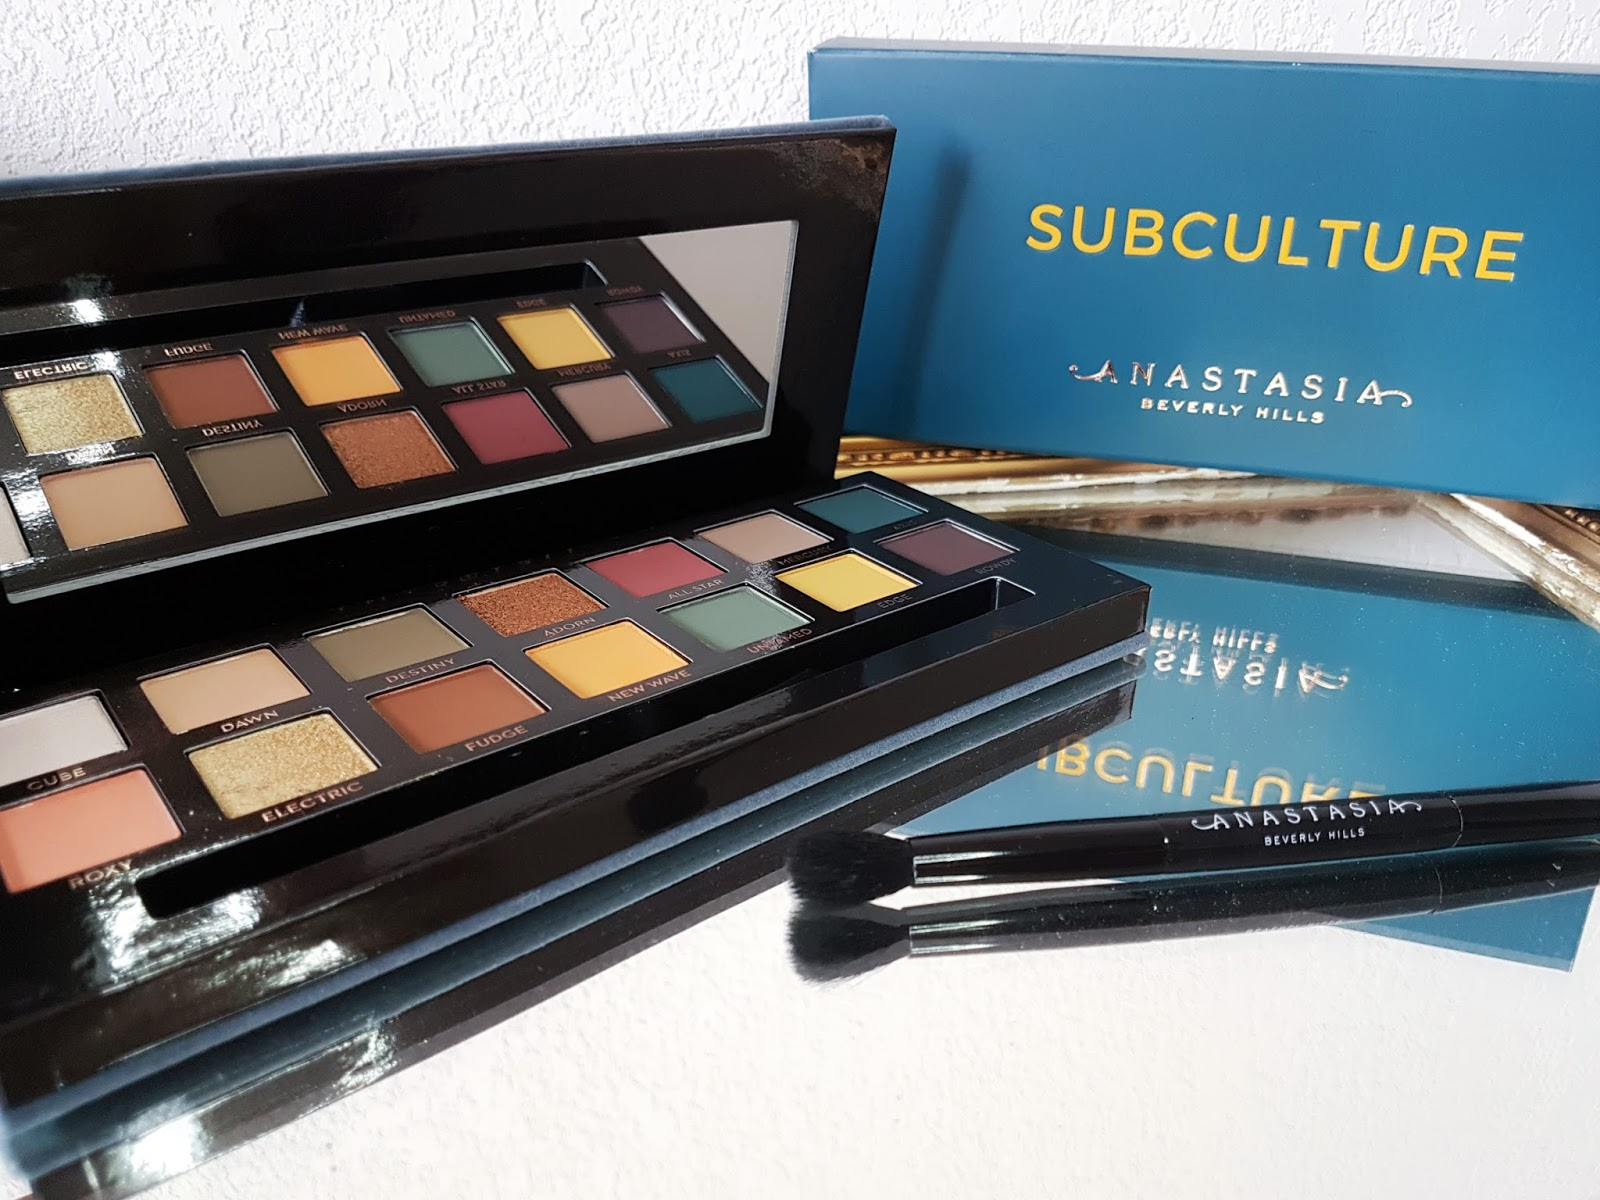 revue-palette-subculture-anastasia-beverly-hills-swatch-idee-makeup-marion-cameleon-mama-syca-beaute